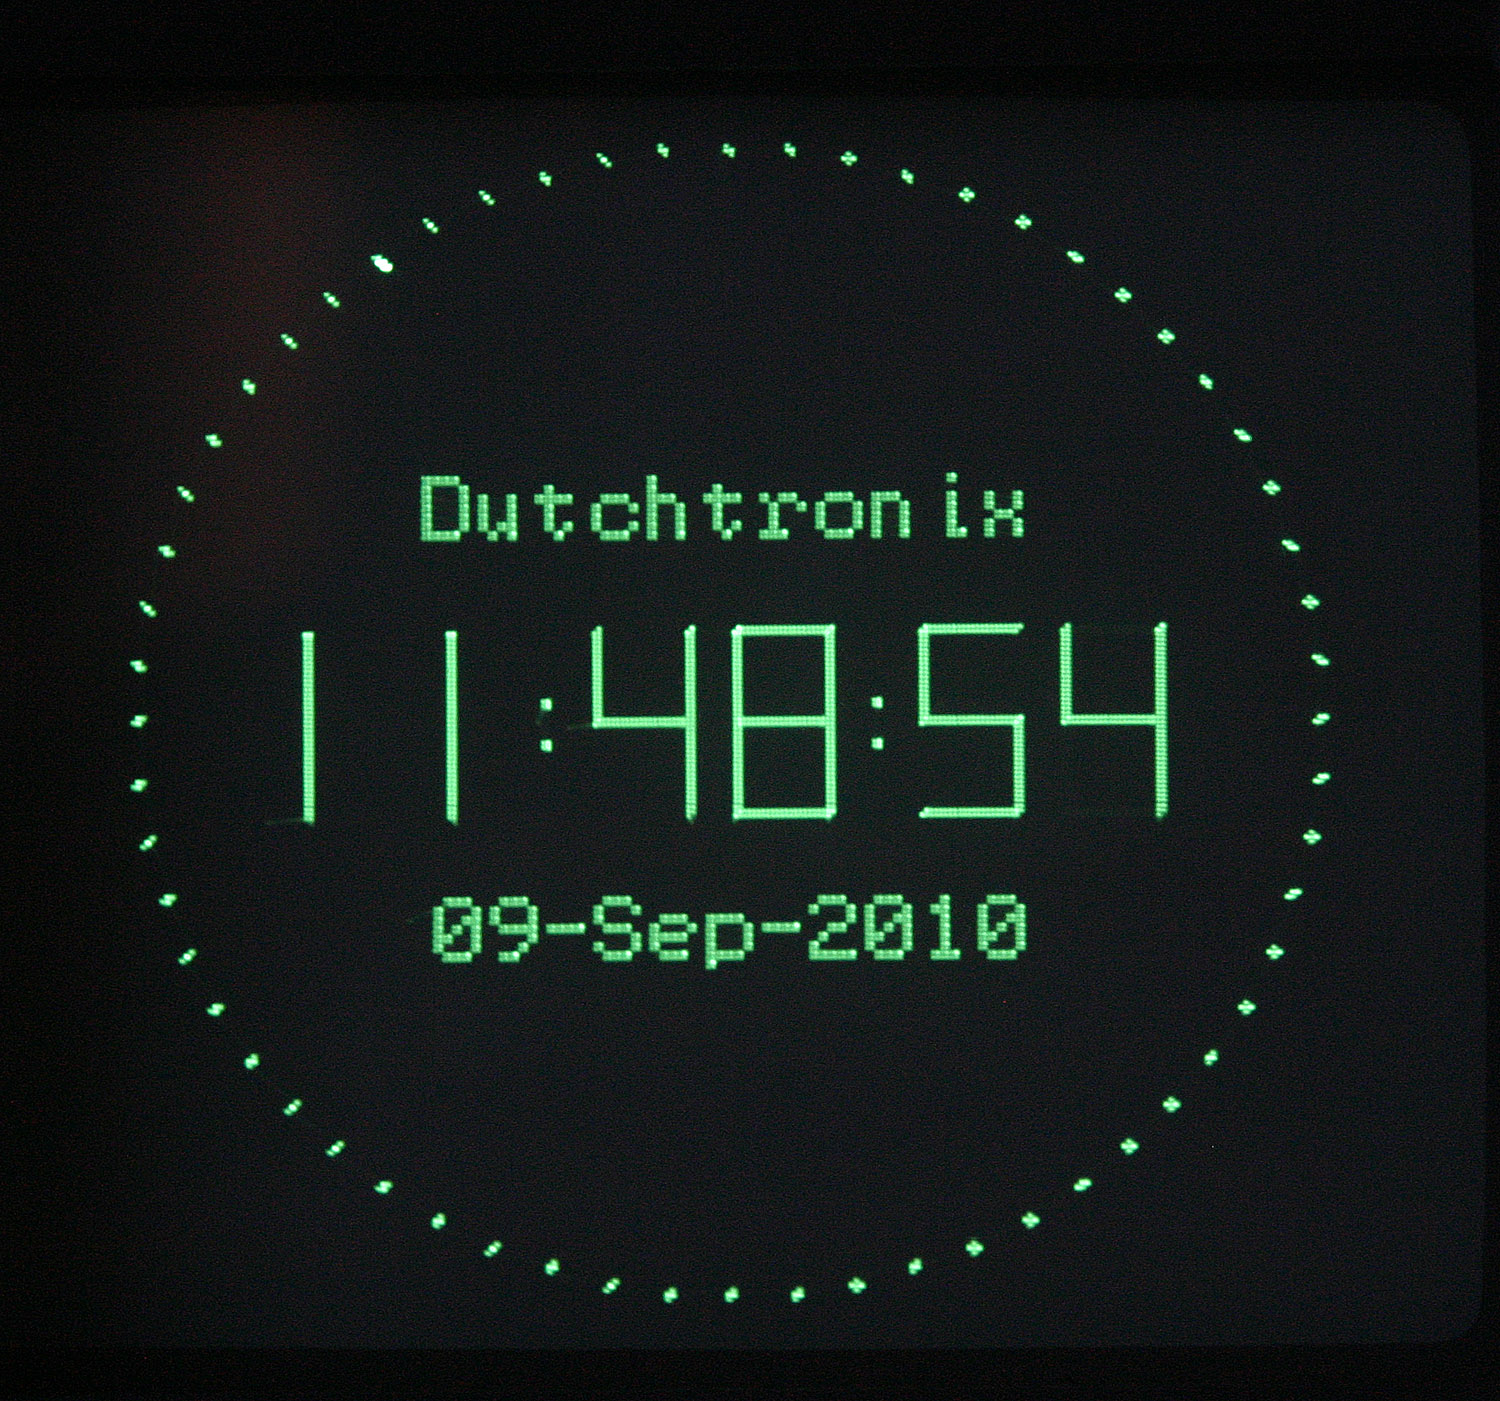 Digital Clock Face Digital display